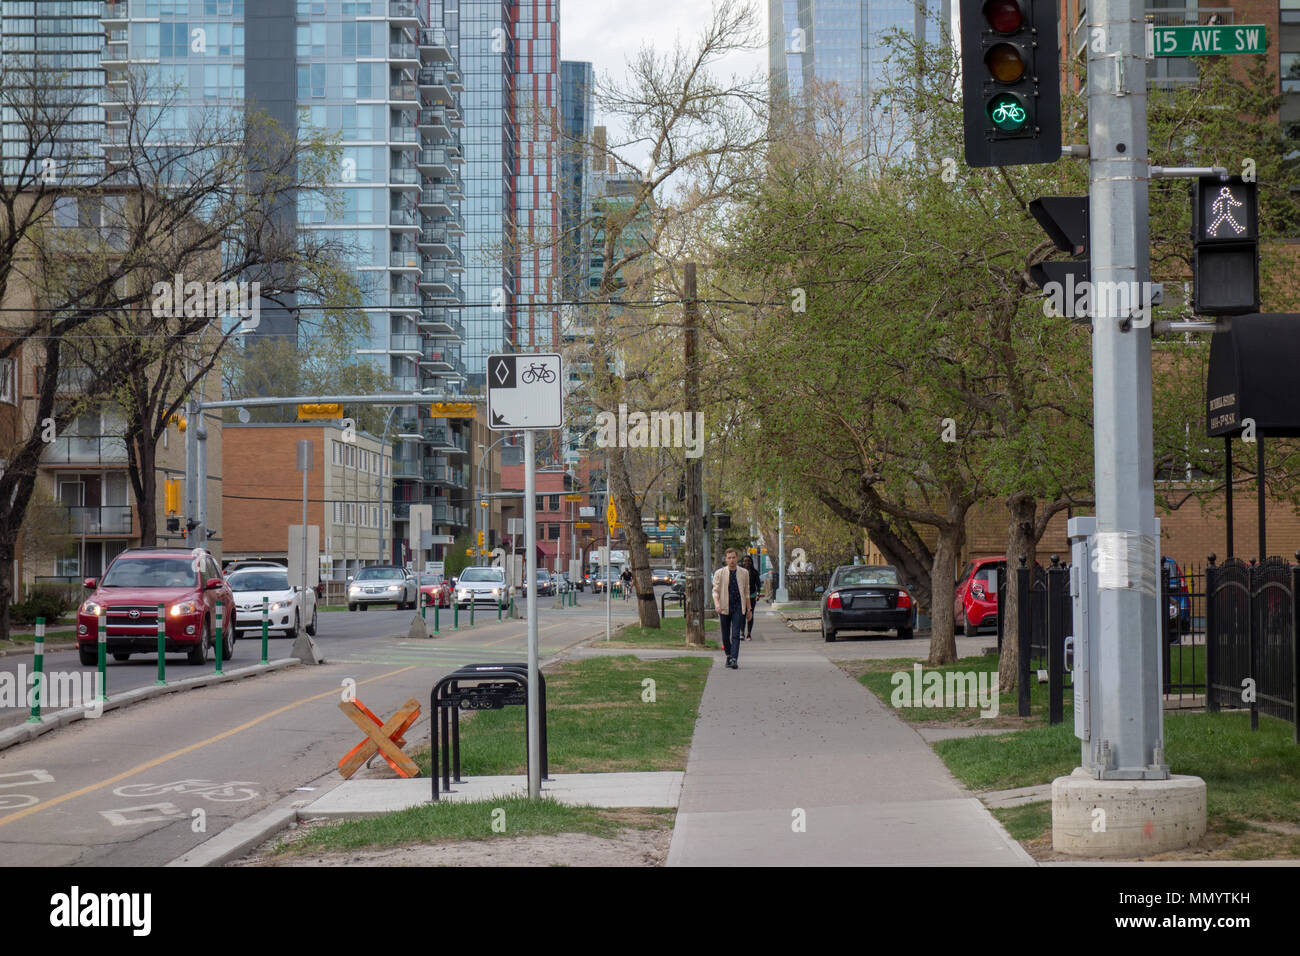 Pedestrian and bike signals next to dedicated bike lane along 5th Street SW in Calgary, Alberta. - Stock Image